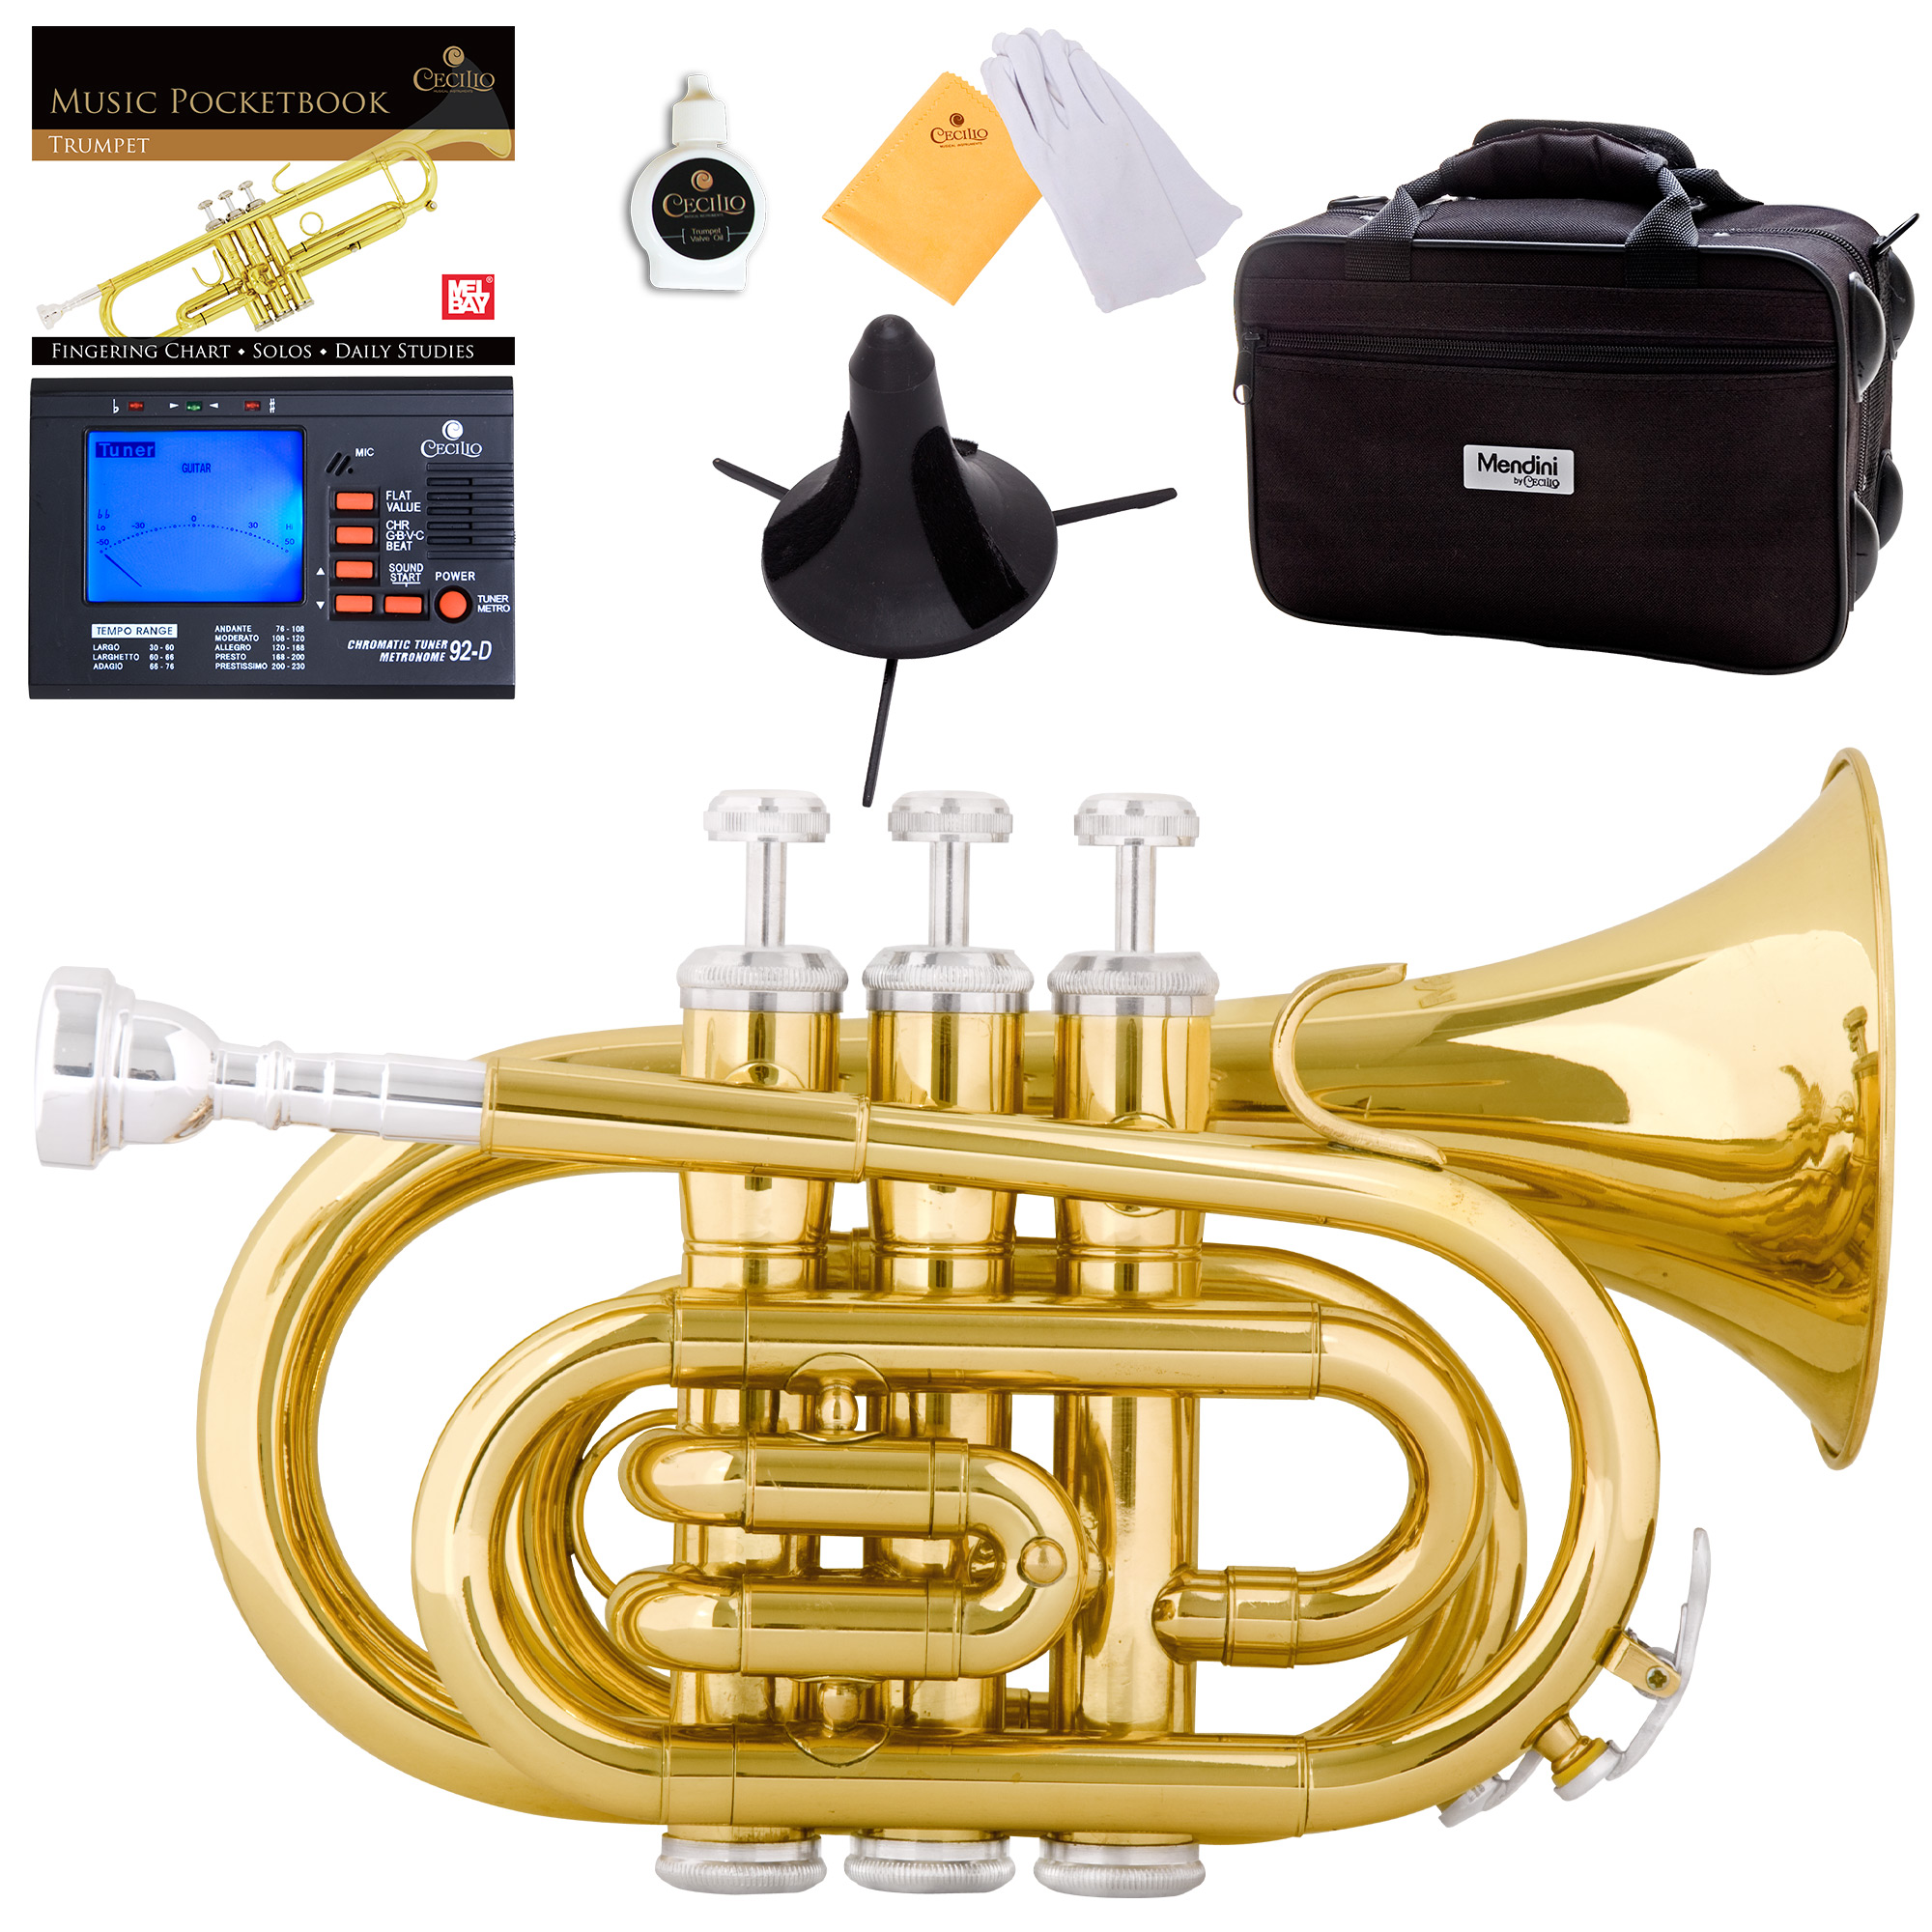 Mendini by Cecilio Gold Bb Pocket Trumpet w/1 Year Warranty, Tuner, Stand, Pocketbook and Deluxe Case, MPT-L